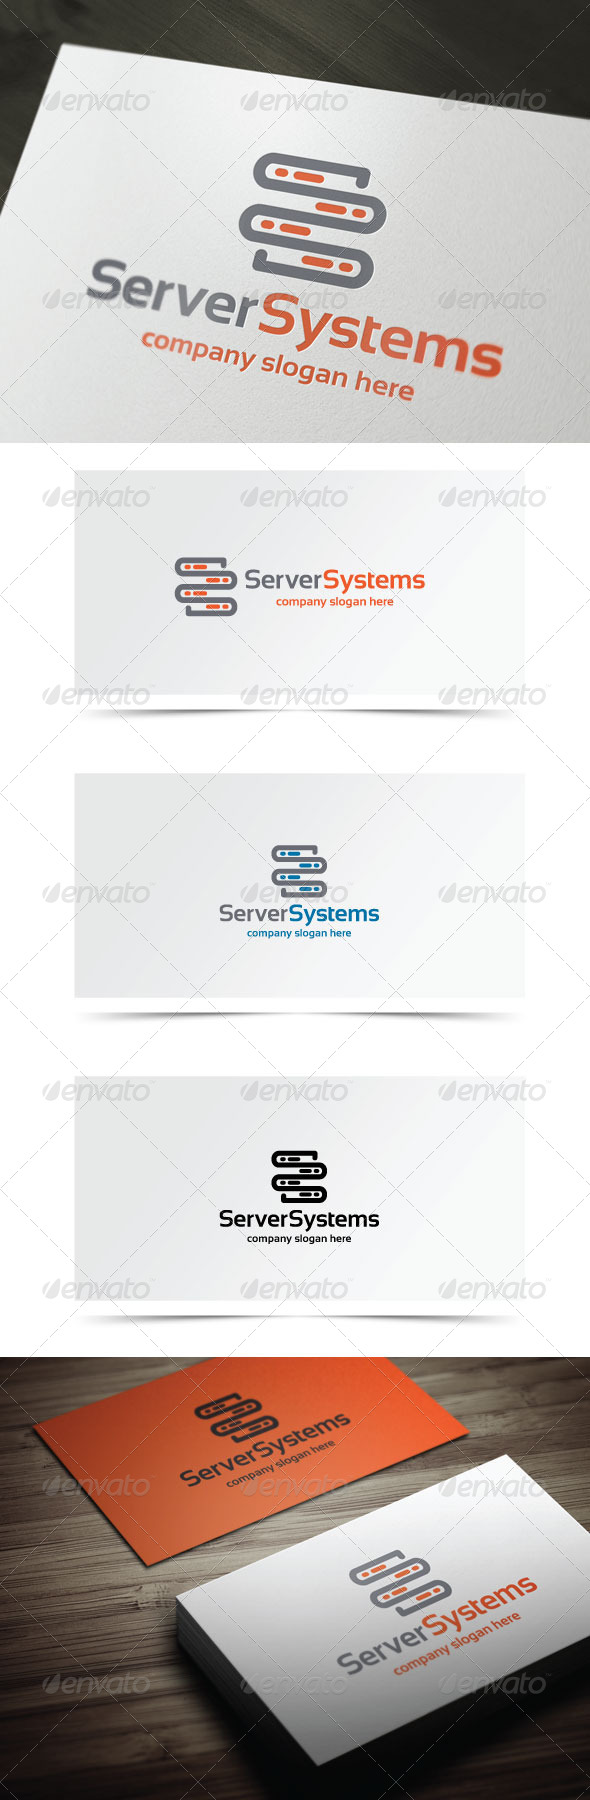 GraphicRiver Server Systems 6913970